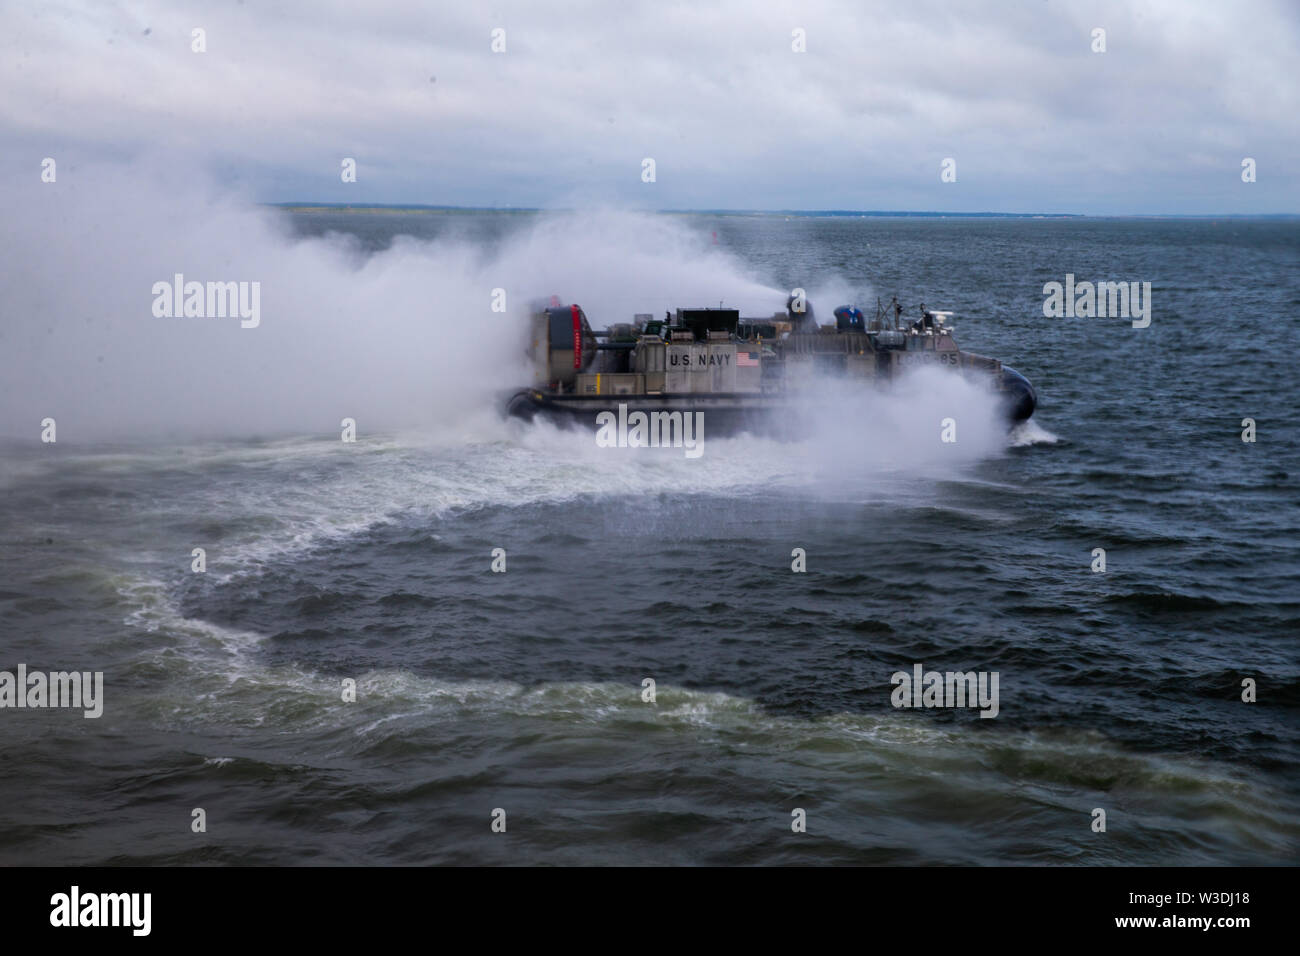 U.S. Navy landing craft, air cushion assigned to Assault Craft Unit 4, heads towards the well deck of the Dock Landing Ship, USS Carter Hall (LSD 50) Harpers Ferry Class, during a Defense Support for Civil Authority (DSCA) loading exercise (LOADEX) on Naval Air Station Norfolk, Virginia, July 12, 2019. U.S. Marines with II Marine Expeditionary Force rehearsed a LOADEX with the U.S. Navy to rapidly form, embark and deploy maritime DSCA operations in support of U.S. Northern Command.  (U.S. Marine Corps photo by Lance Cpl. Adaezia Chavez) - Stock Image